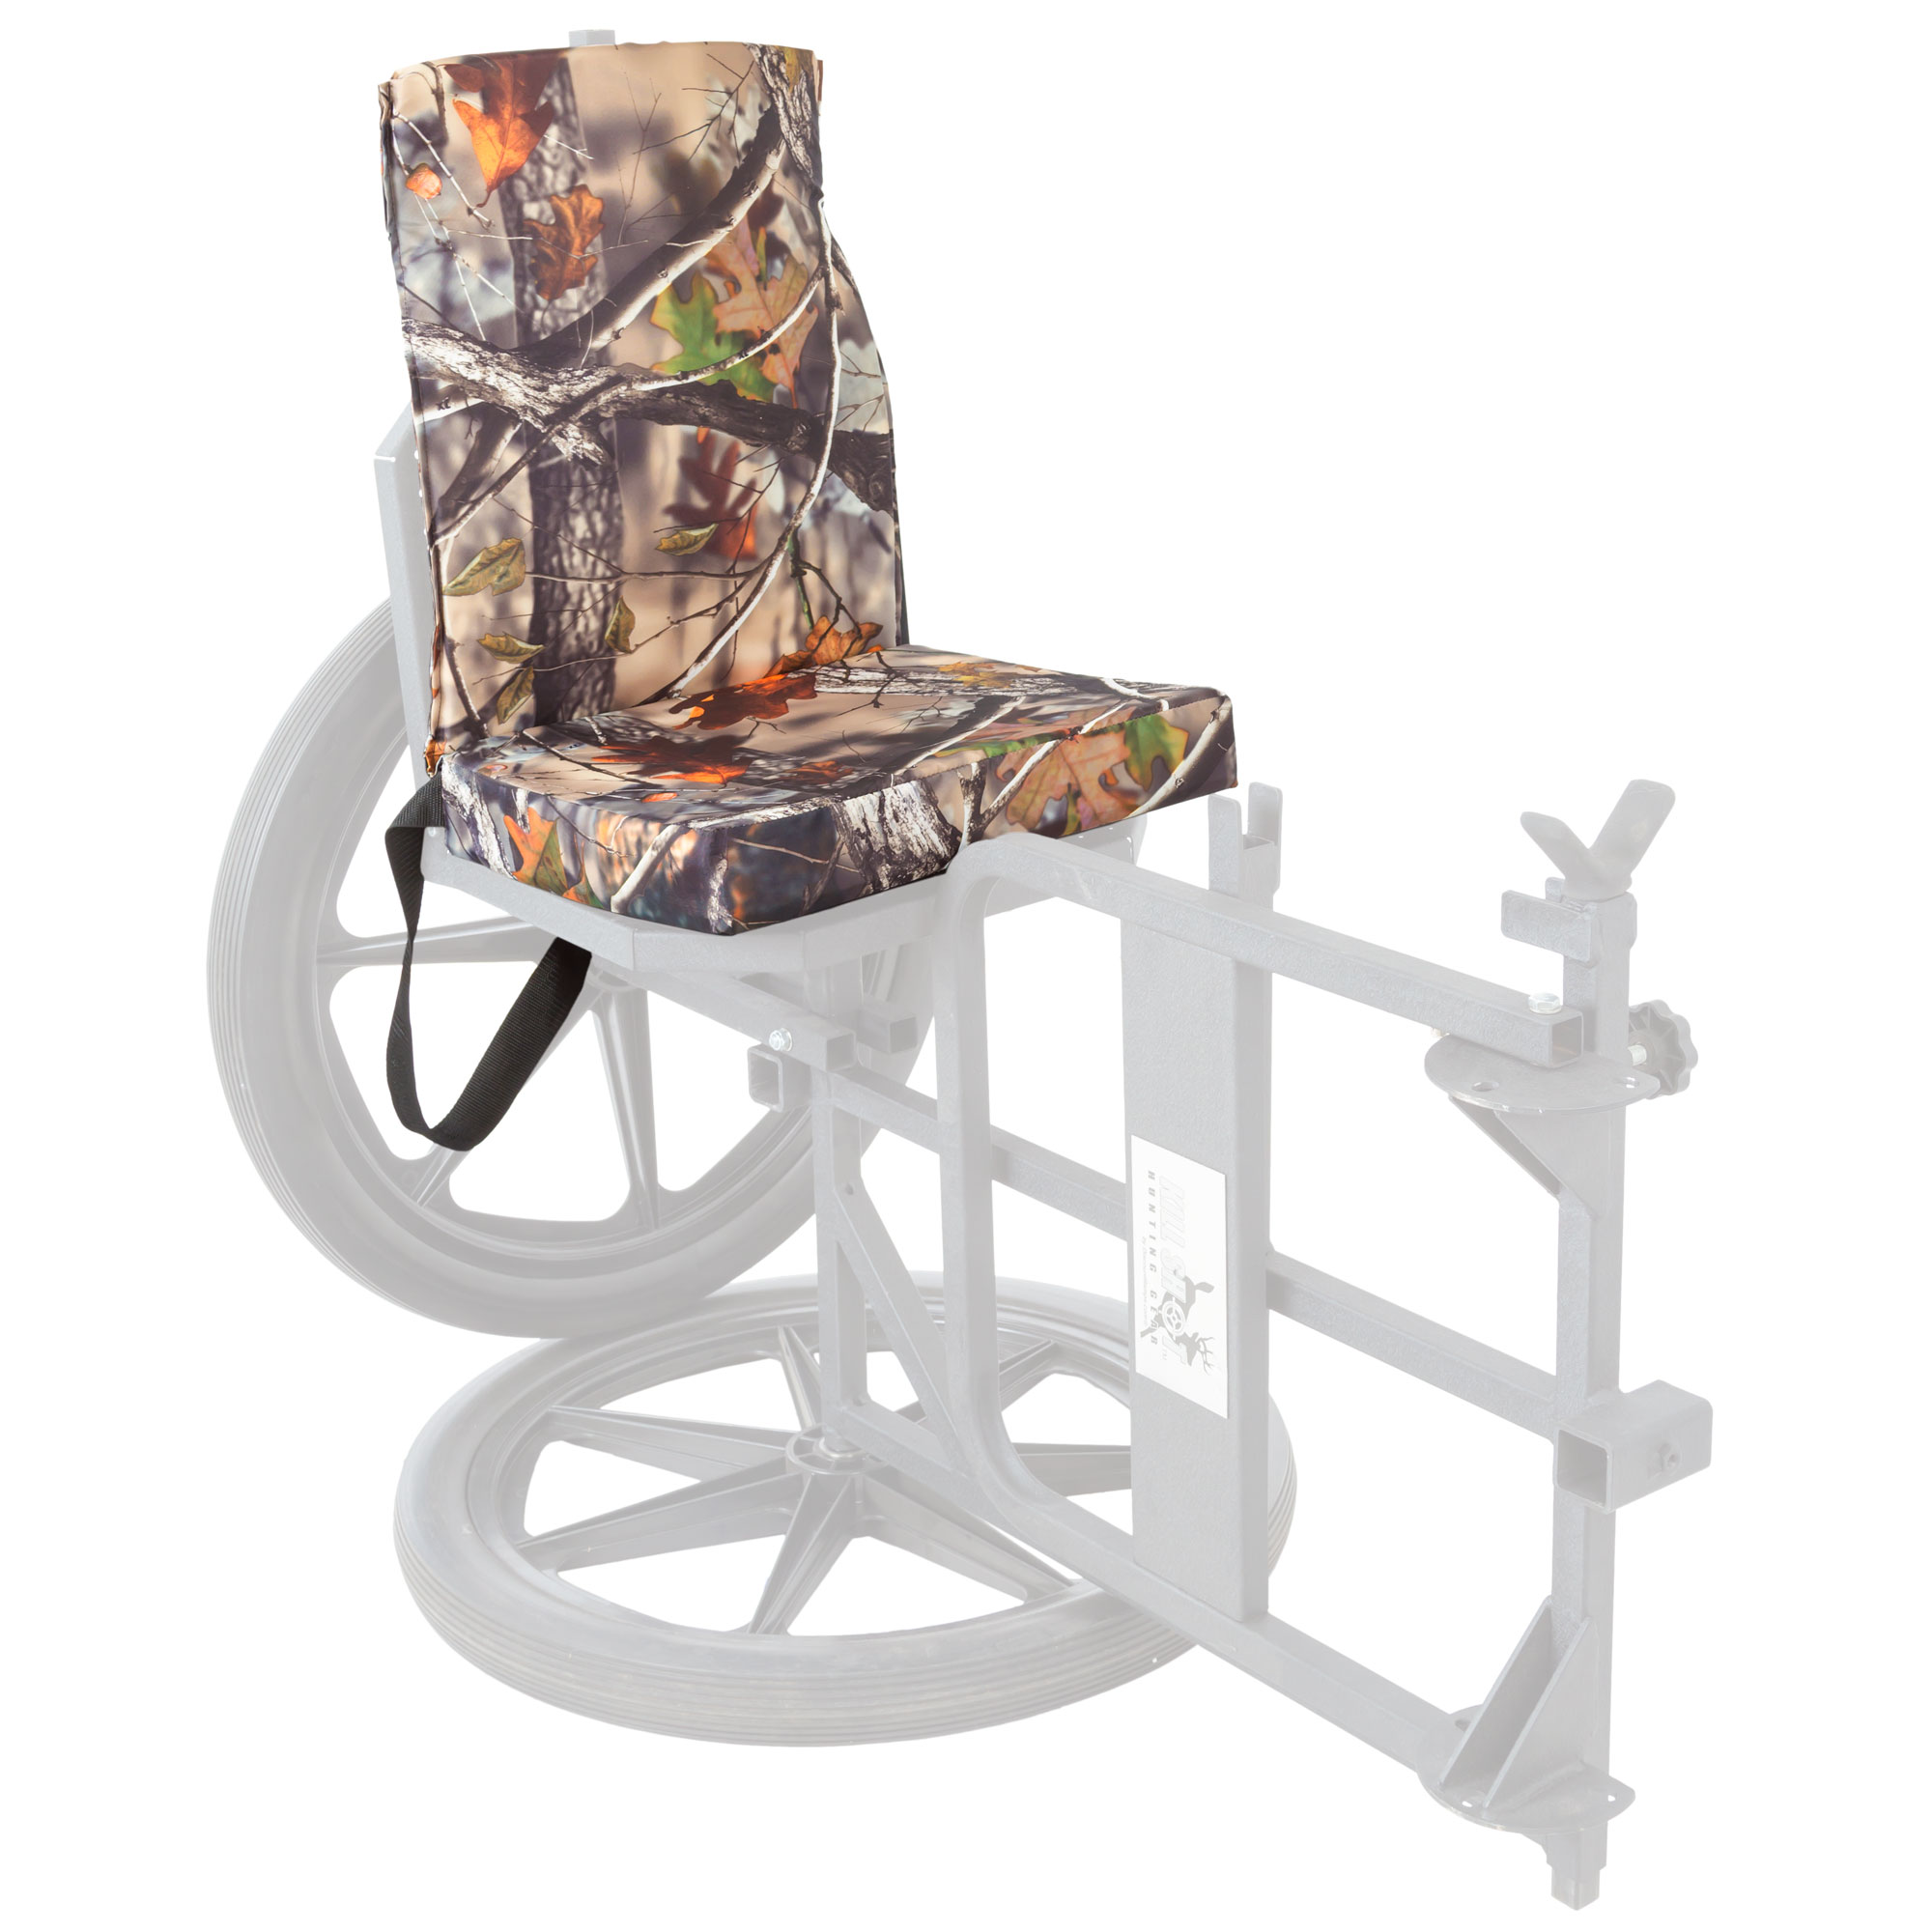 Kill Shot Hunting Chair Waterproof Padded Camouflage Cushion for Multi Purpose Throne KS101 by Discount Ramps